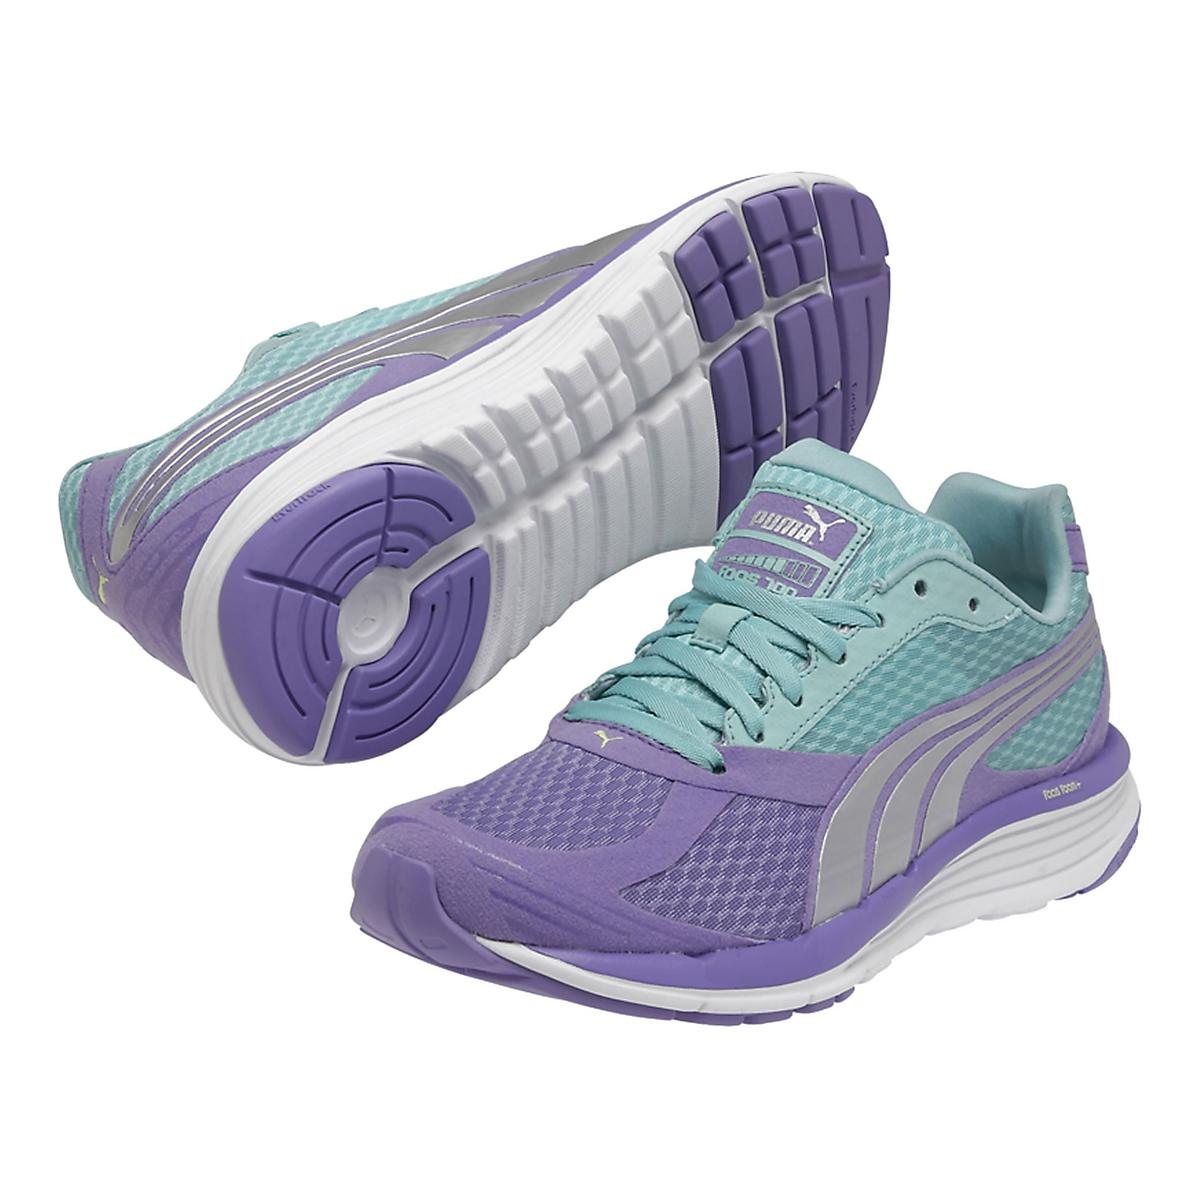 Womens Puma Faas 700 v2 Running Shoe at Road Runner Sports